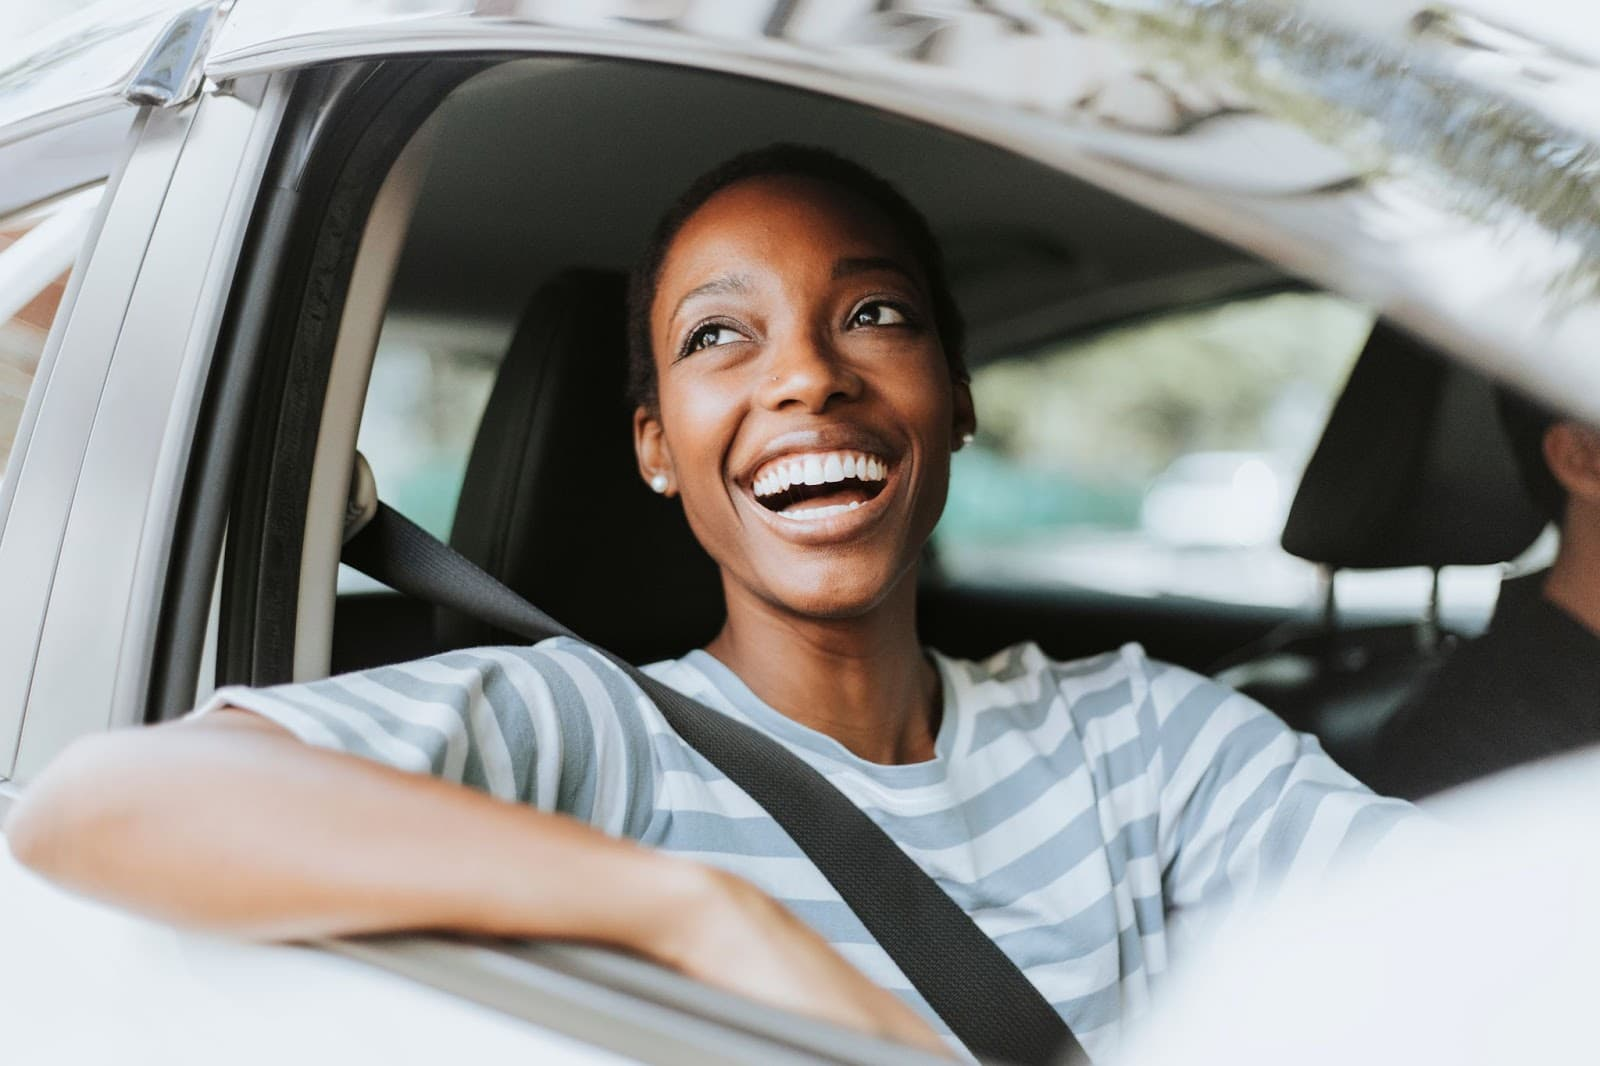 How To Pay Off Your Car Loan - Using Your Car!